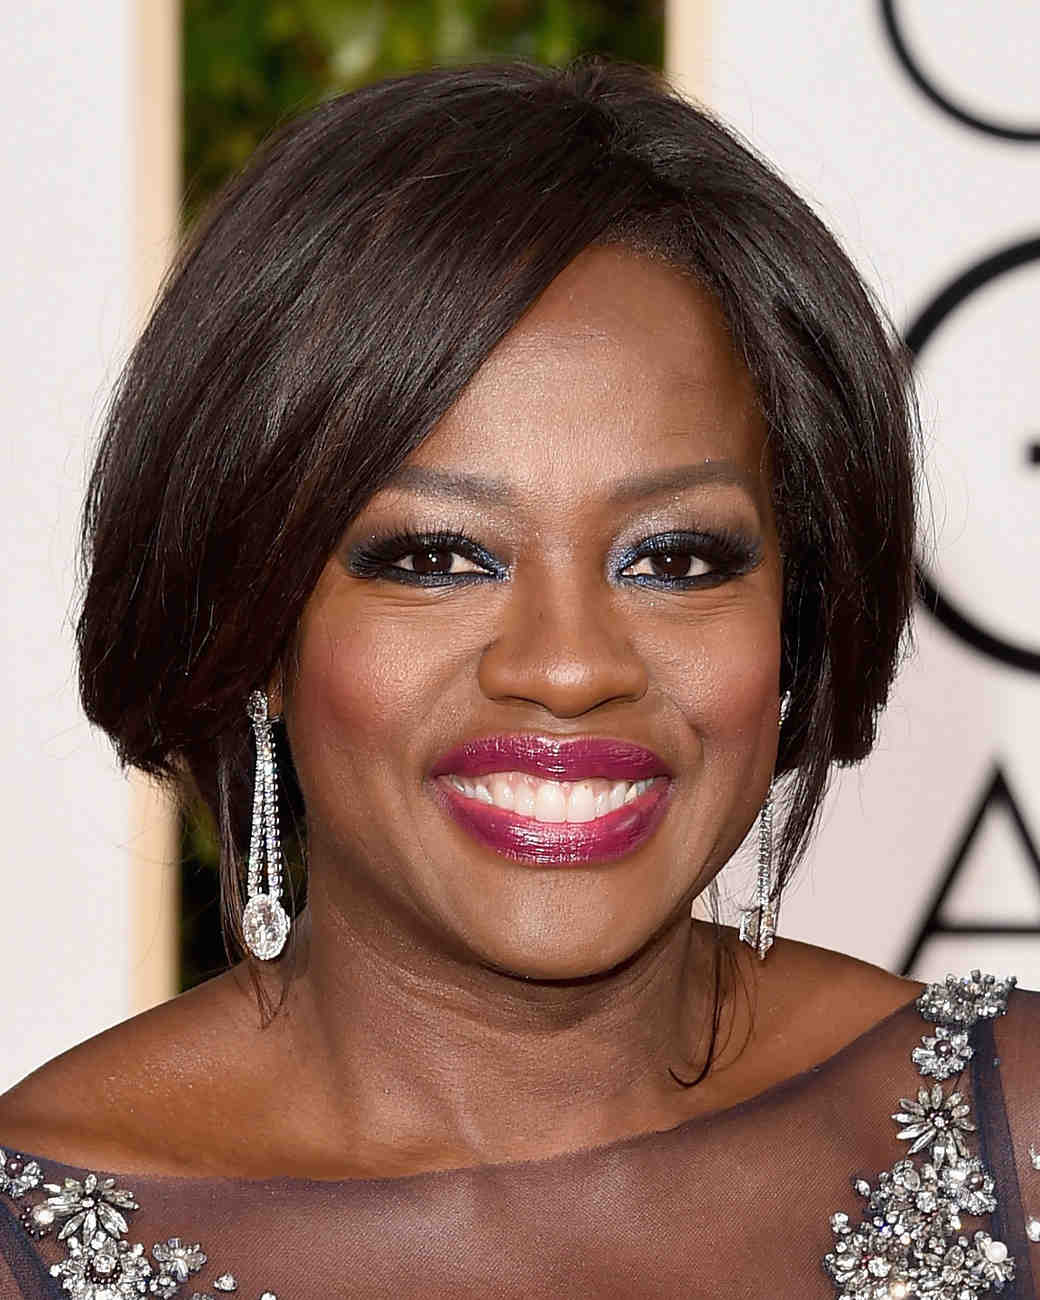 golden-globes-2016-makeup-looks-viola-davis-0116.jpg